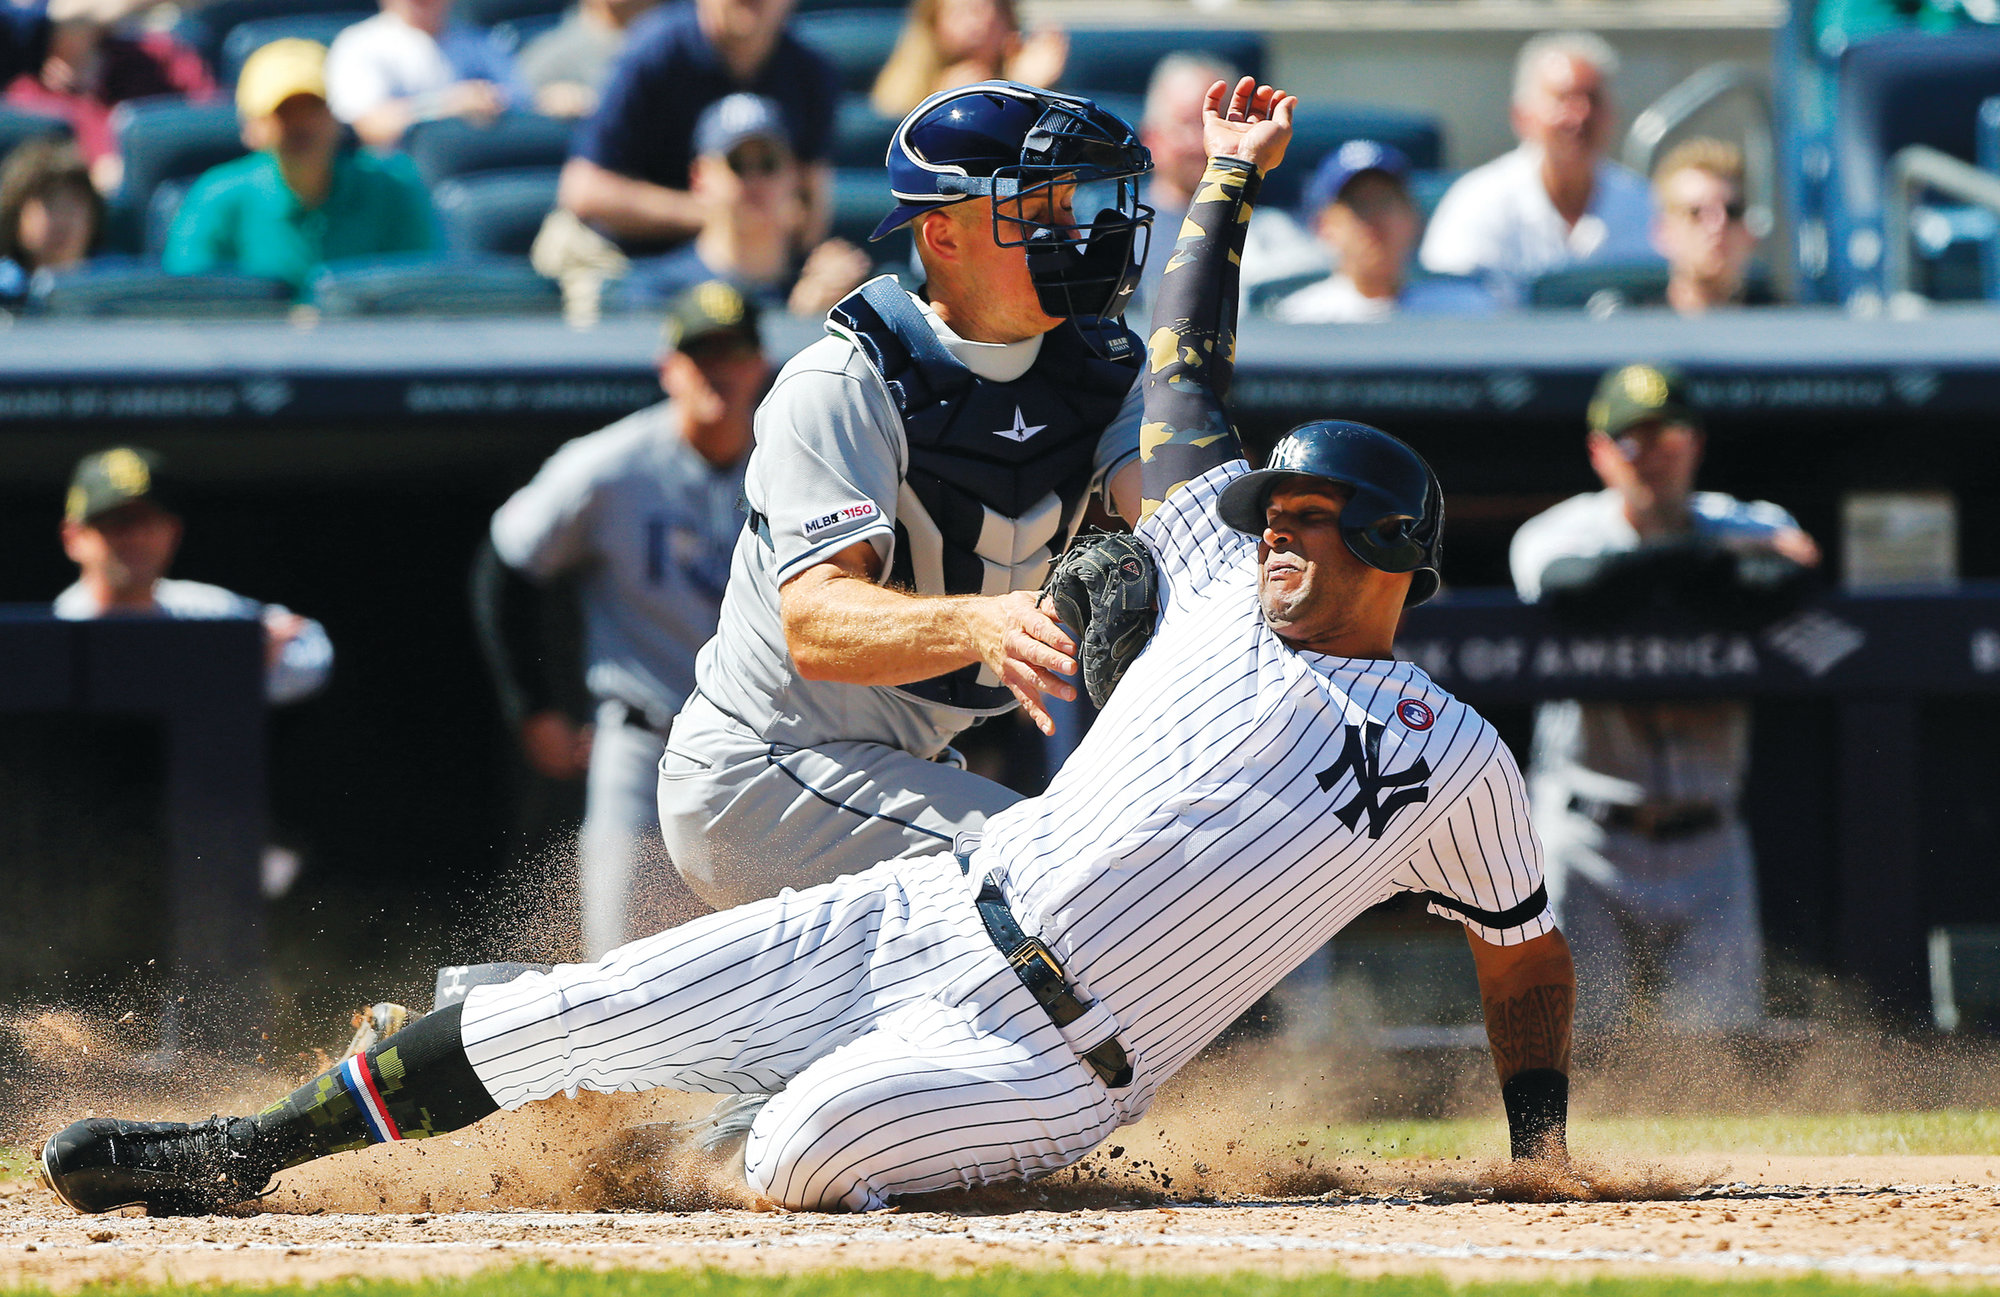 New York's Aaron Hicks, right, is tagged out at the plate by Tampa Bay Rays catcher Erik Kratz ending the sixth inning of their game Saturday in New York. Hicks tried to score from second base on a base hit by Gleyber Torres. The Rays won 2-1.